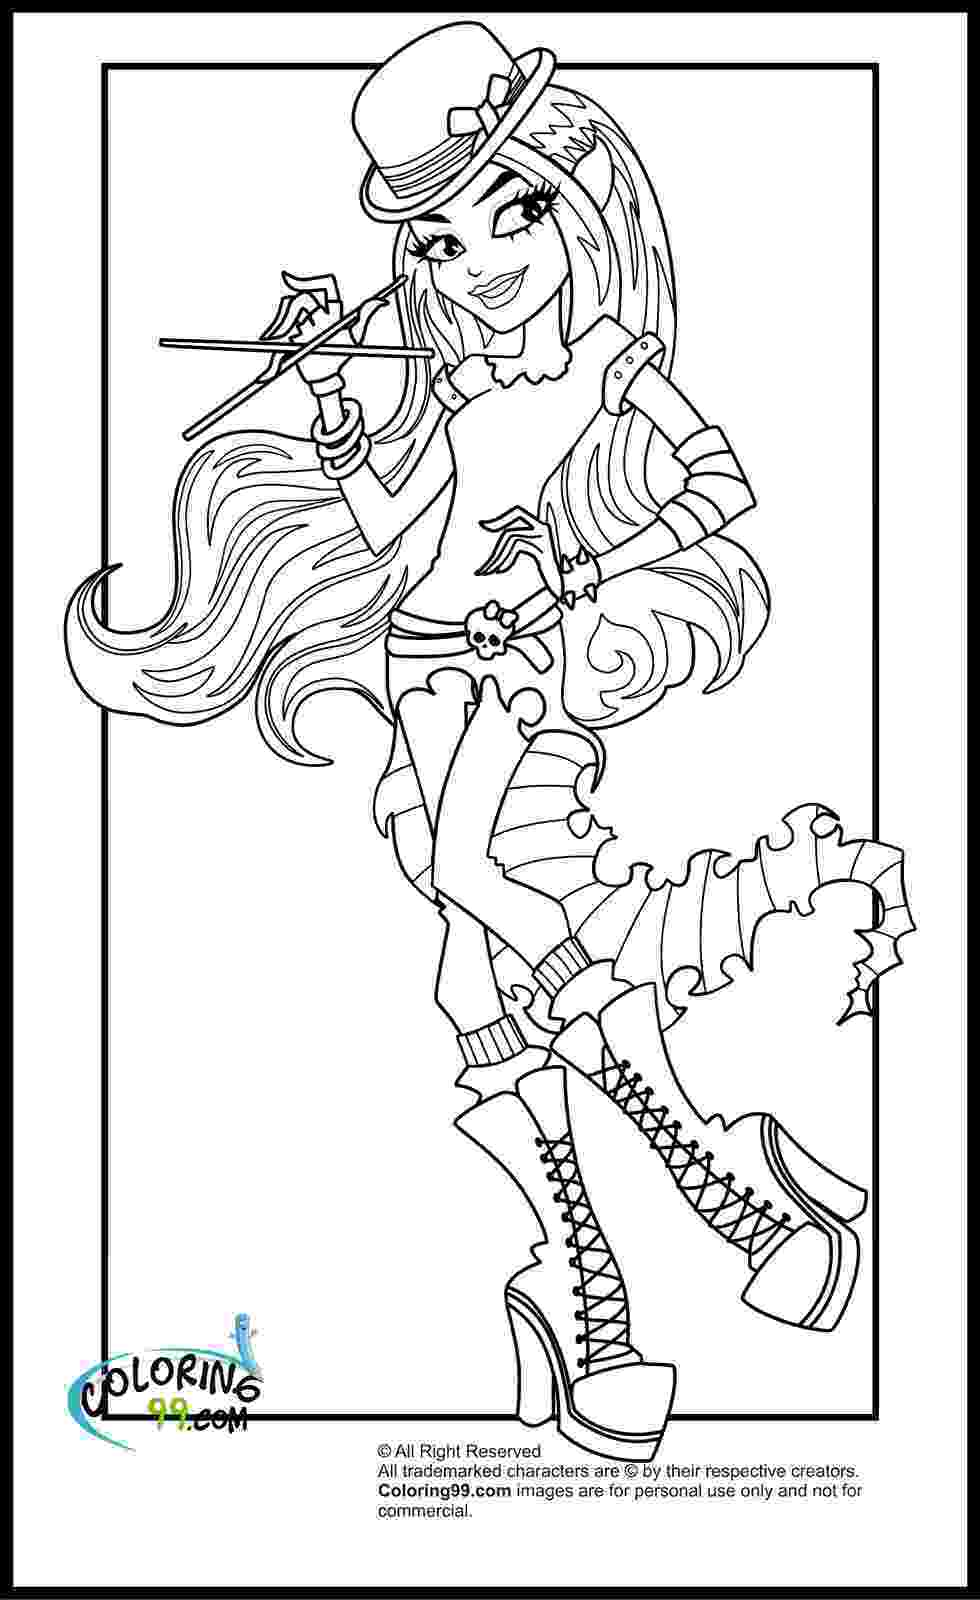 monsters high coloring pages monster high coloring pages team colors pages monsters coloring high